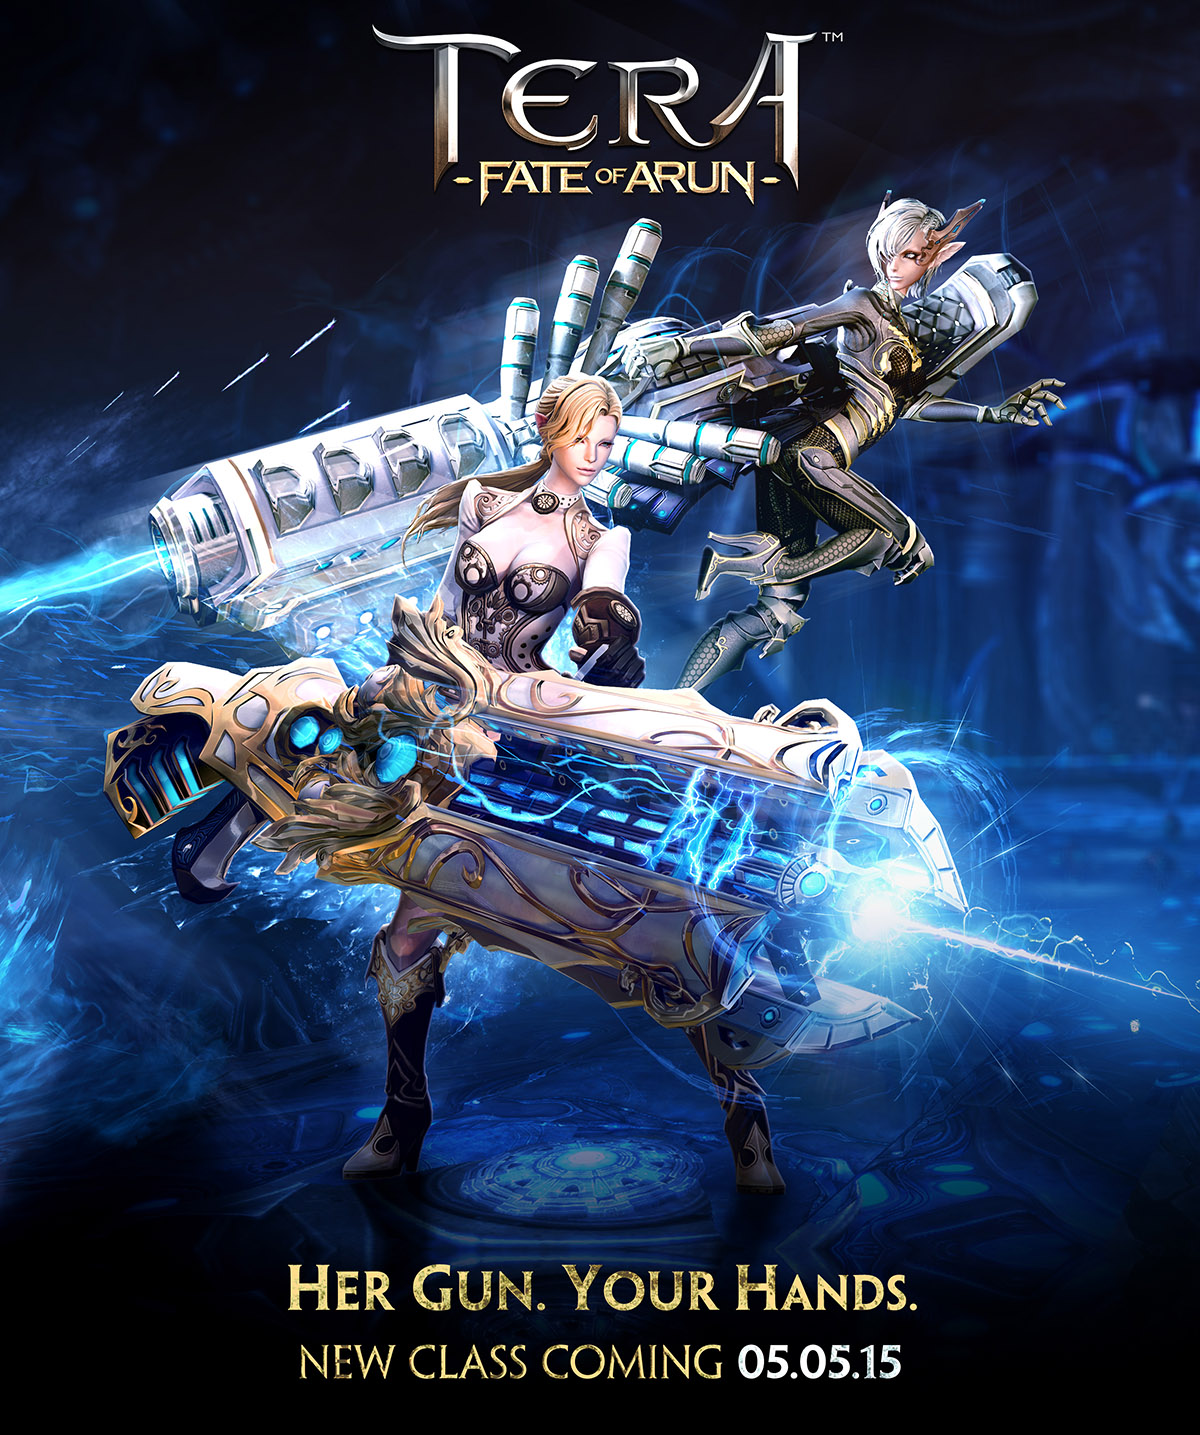 TERA Steam Launch